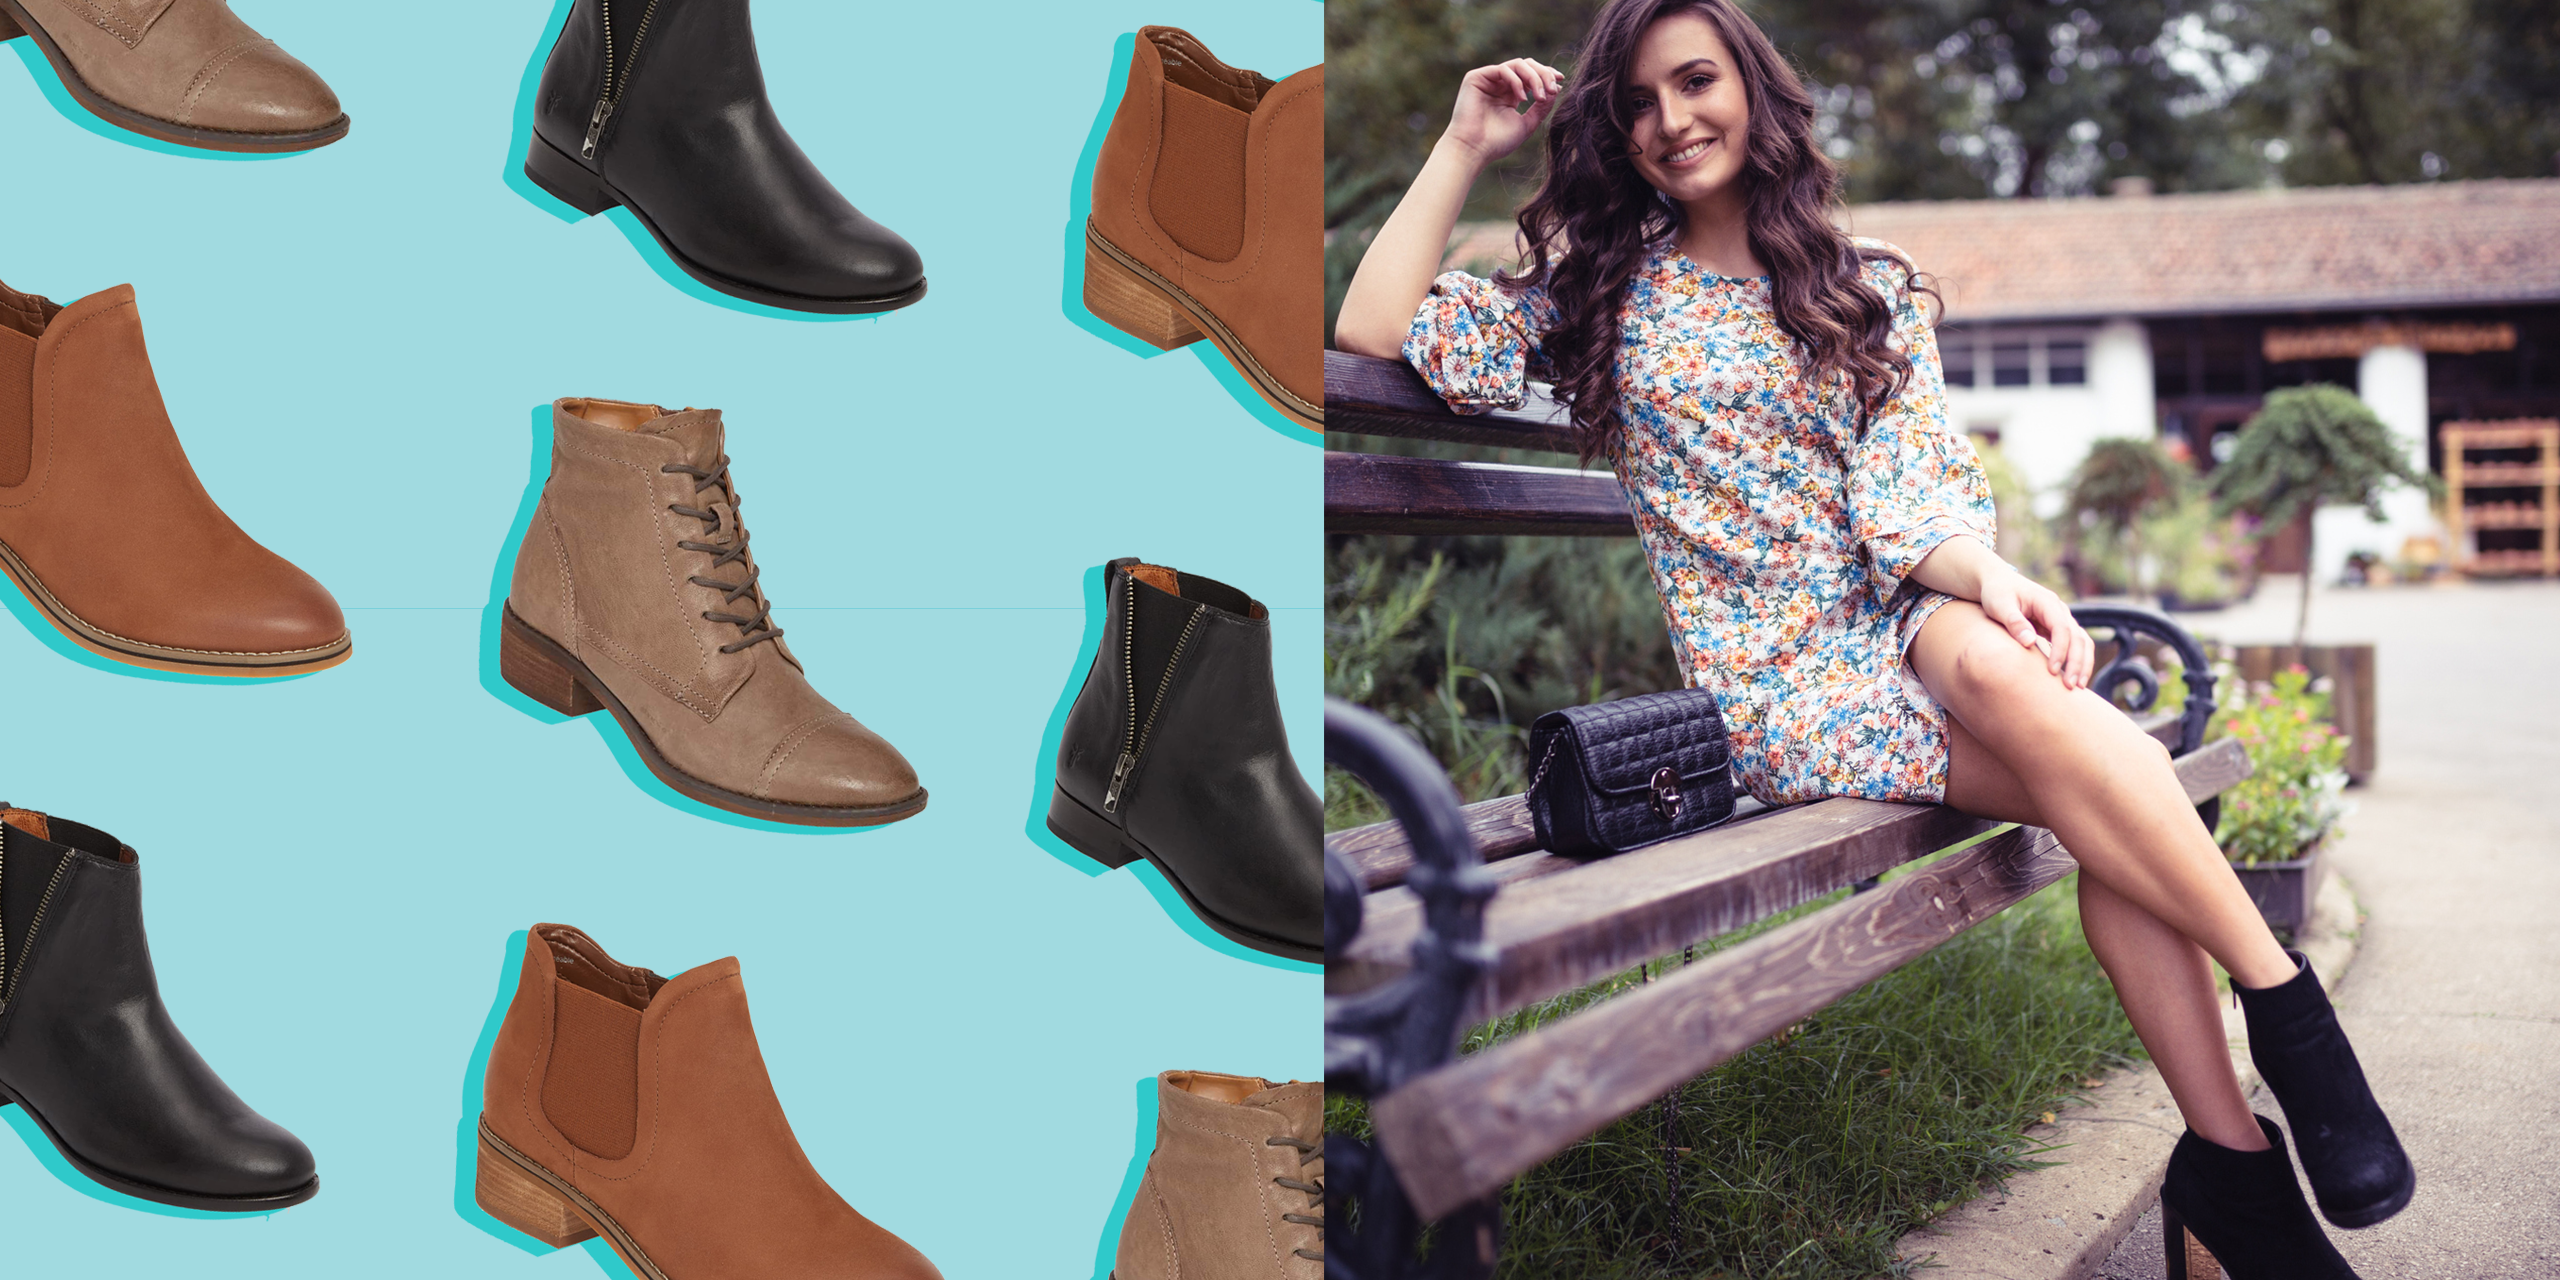 10 Most Comfortable Ankle Boots for Under $200, According to Podiatrists